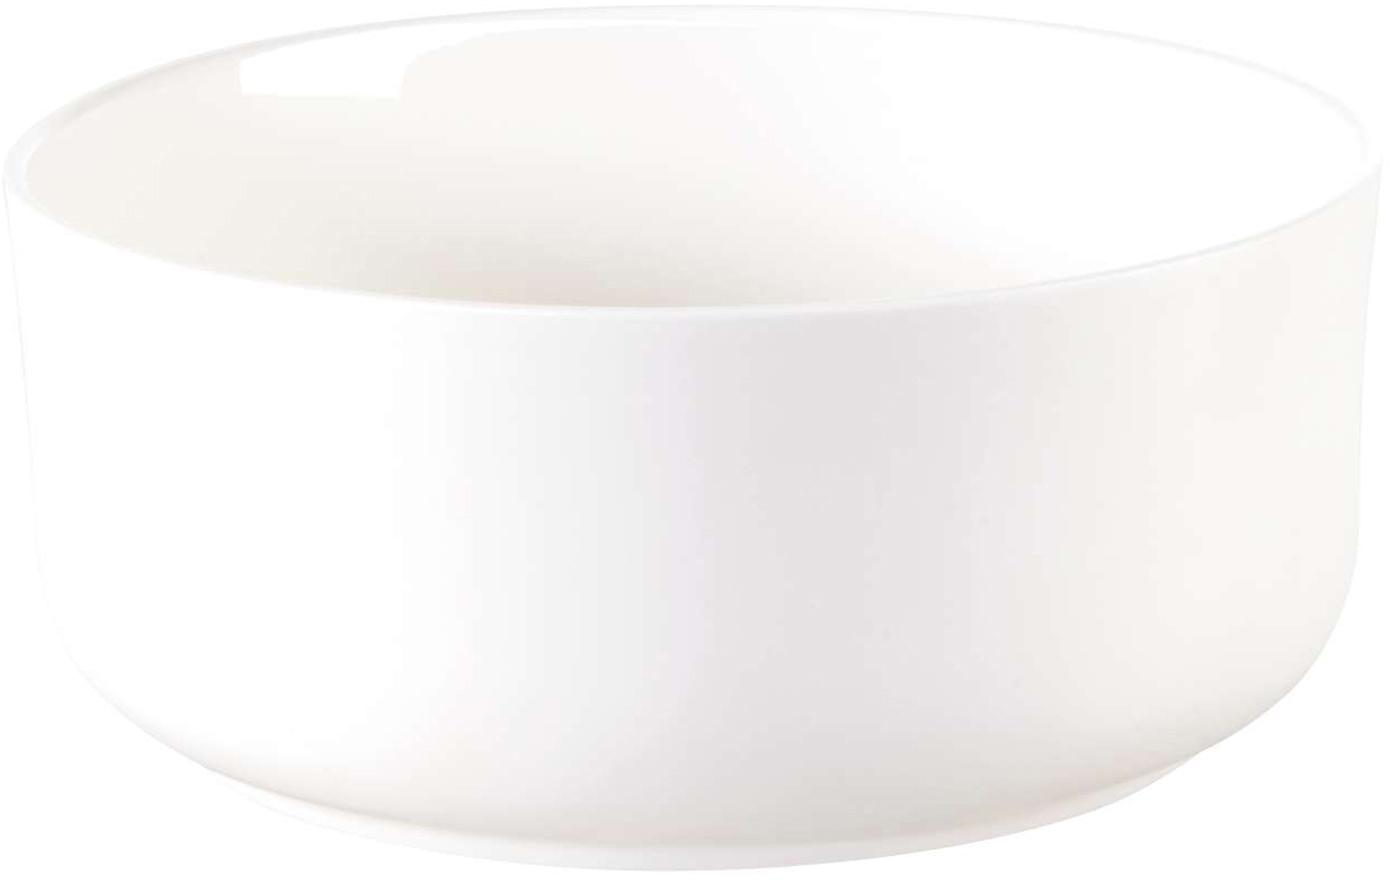 Ciotole Fine Bone china Oco 6 pz, Porcellana Fine Bone China, Avorio, Ø 12 cm